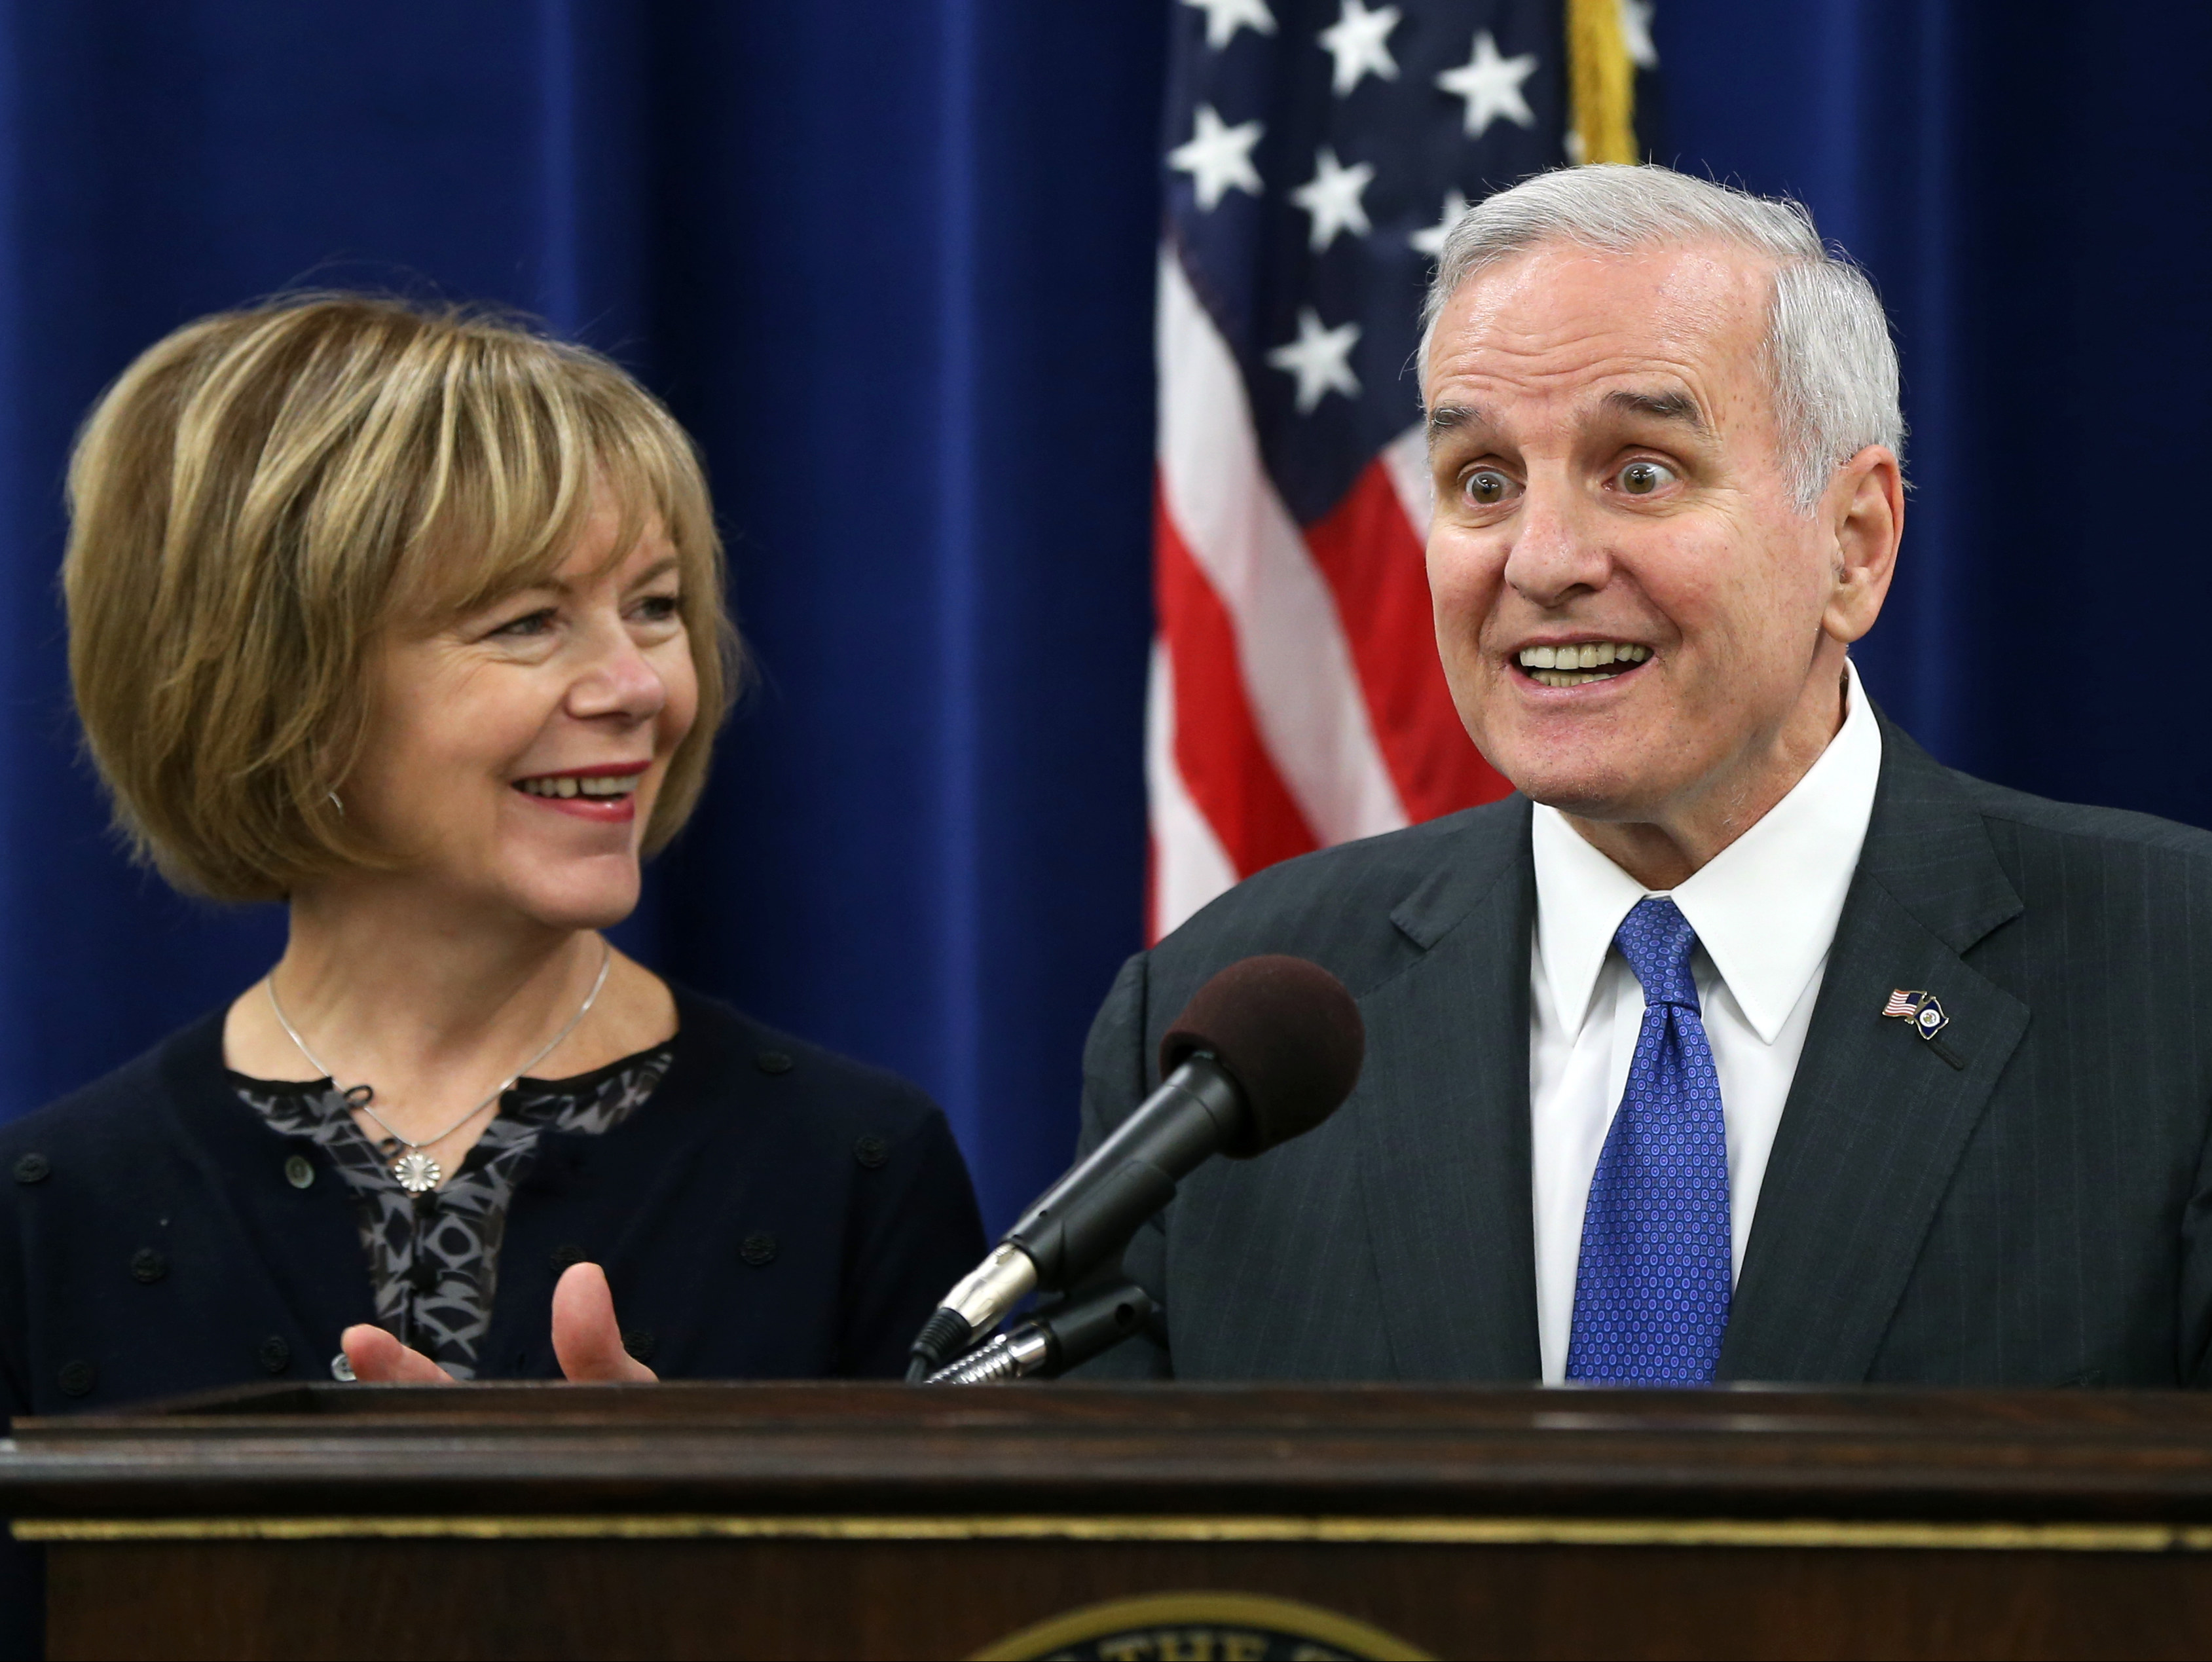 Minnesota Gov. Mark Dayton gets wide-eyed to a question during a press conference Wednesday, Nov. 5, 2014, with running mate Tina Smith in St. Paul, Minn., after winning re-election Tuesday in his race against Republican Jeff Johnson. (AP Photo/Jim Mone)